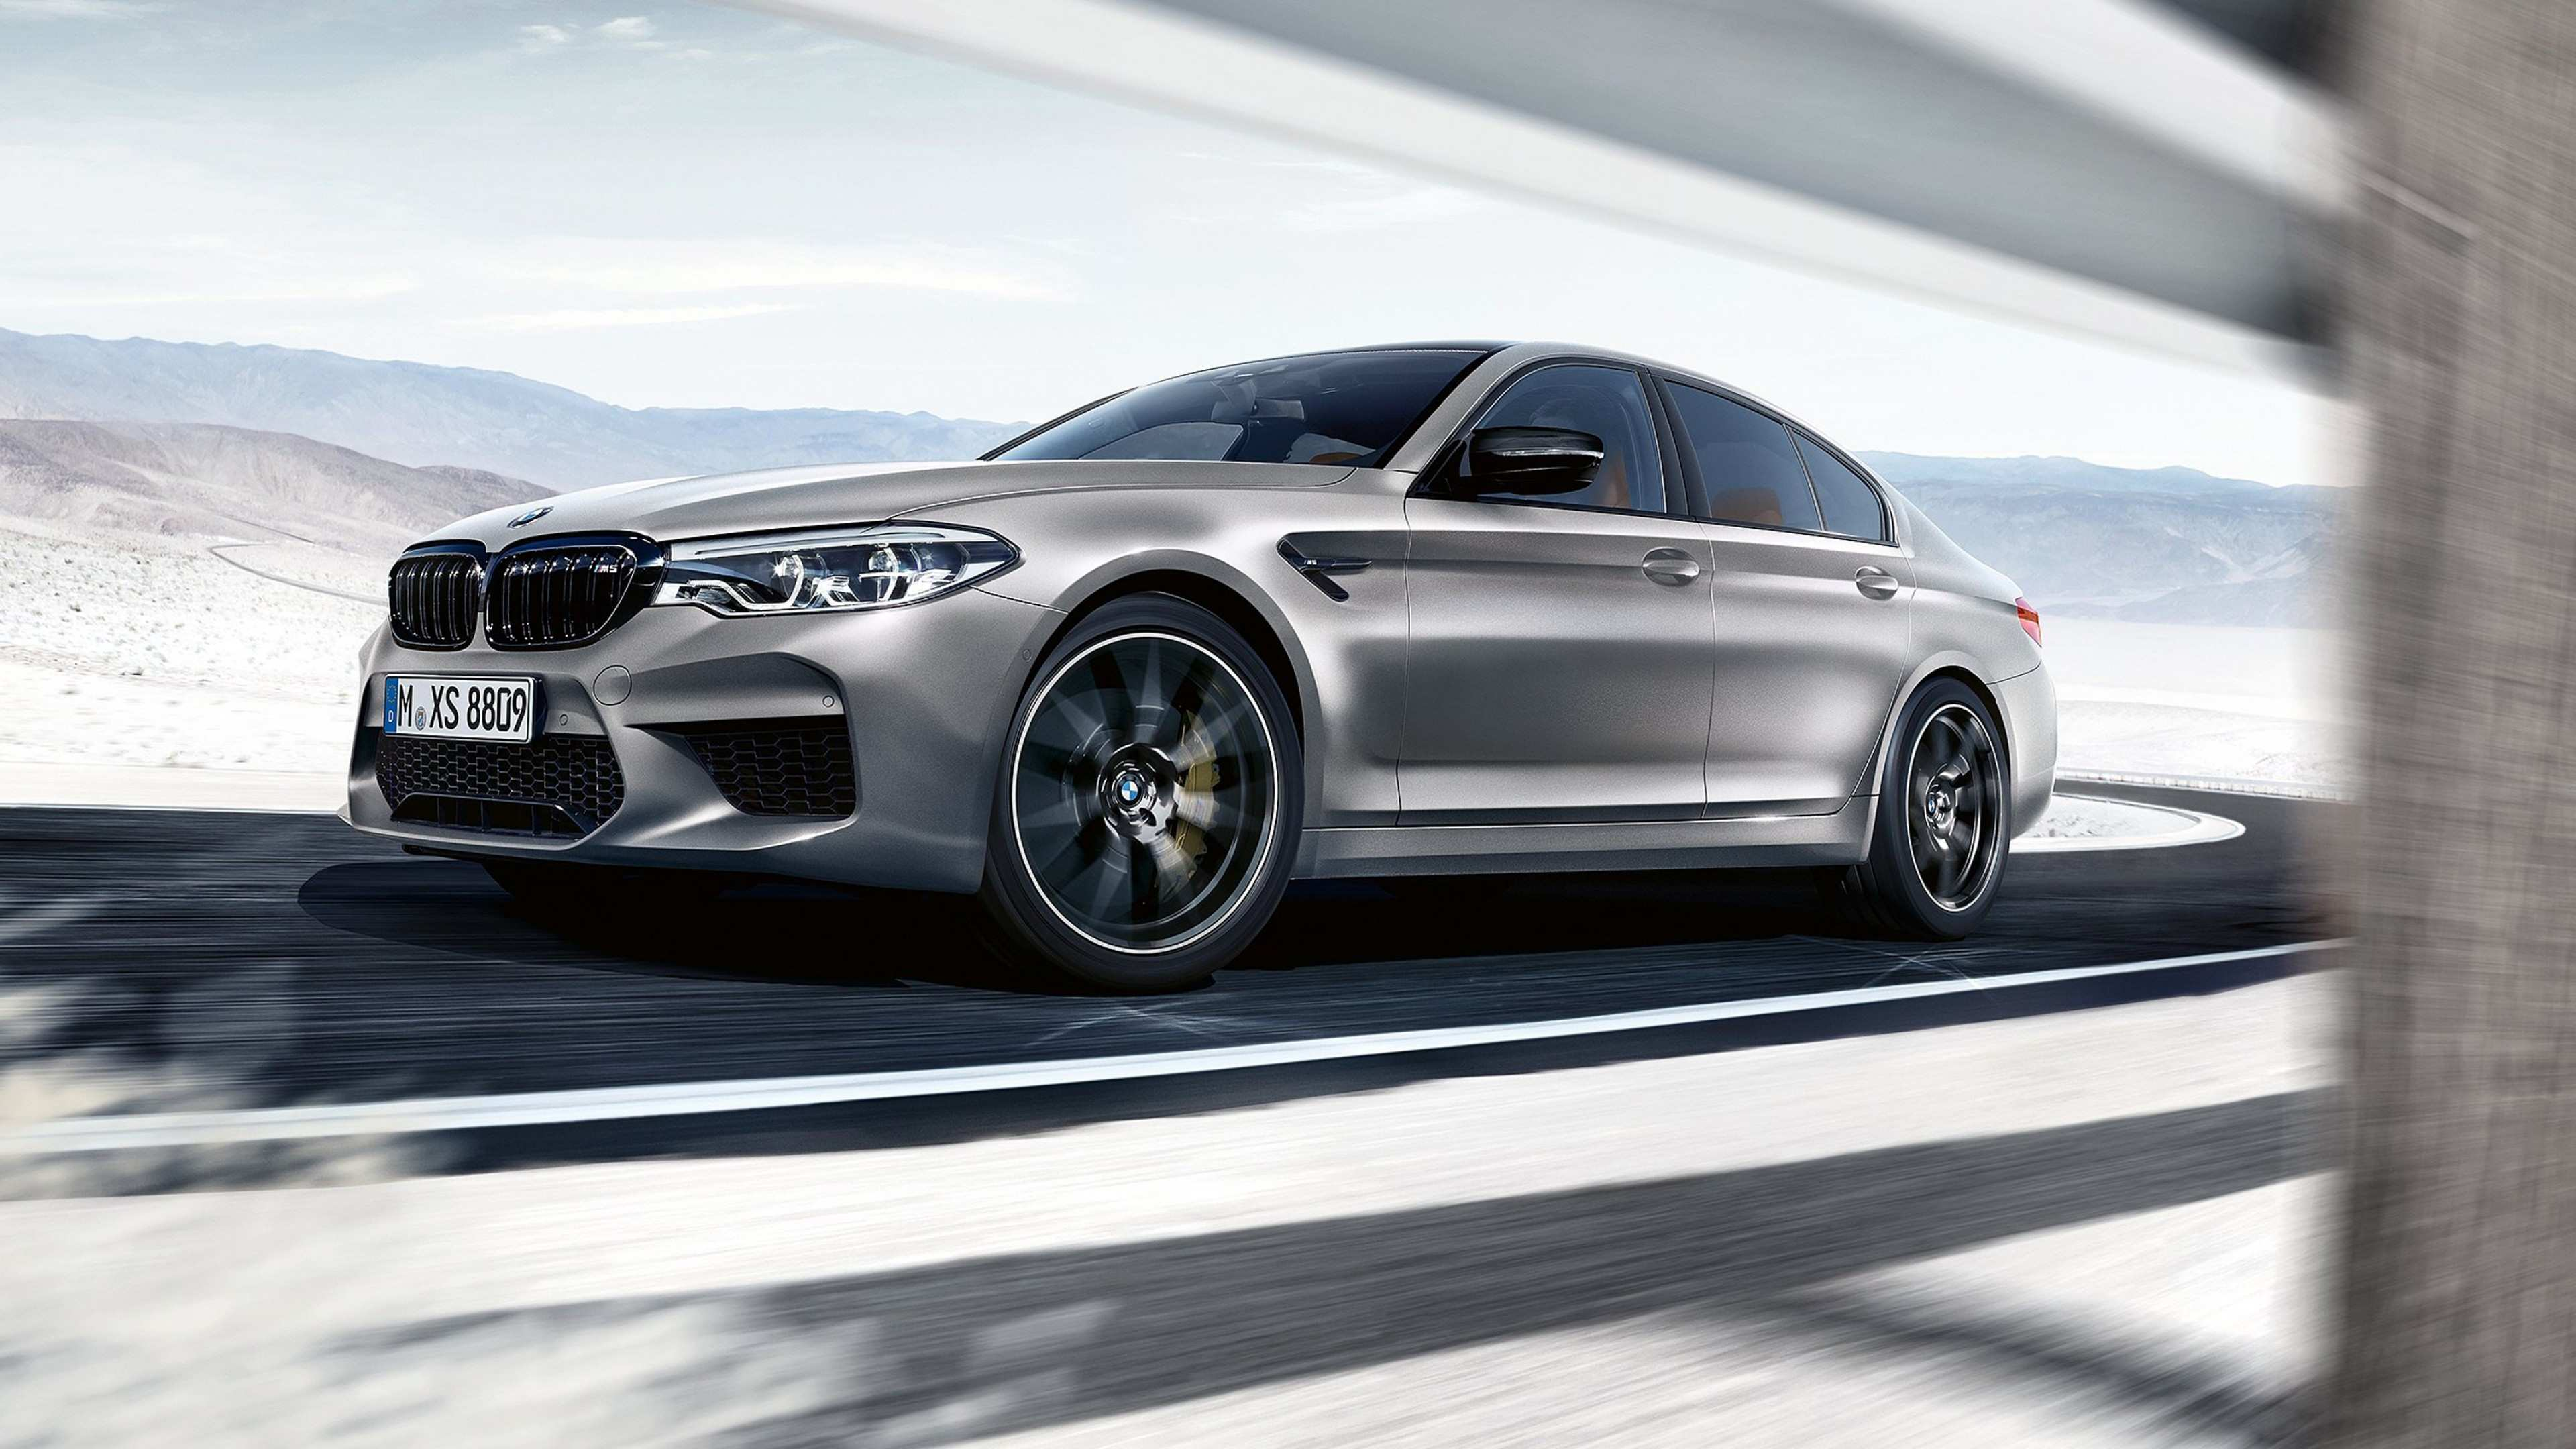 37 All New 2019 Bmw Limited Specs And Review